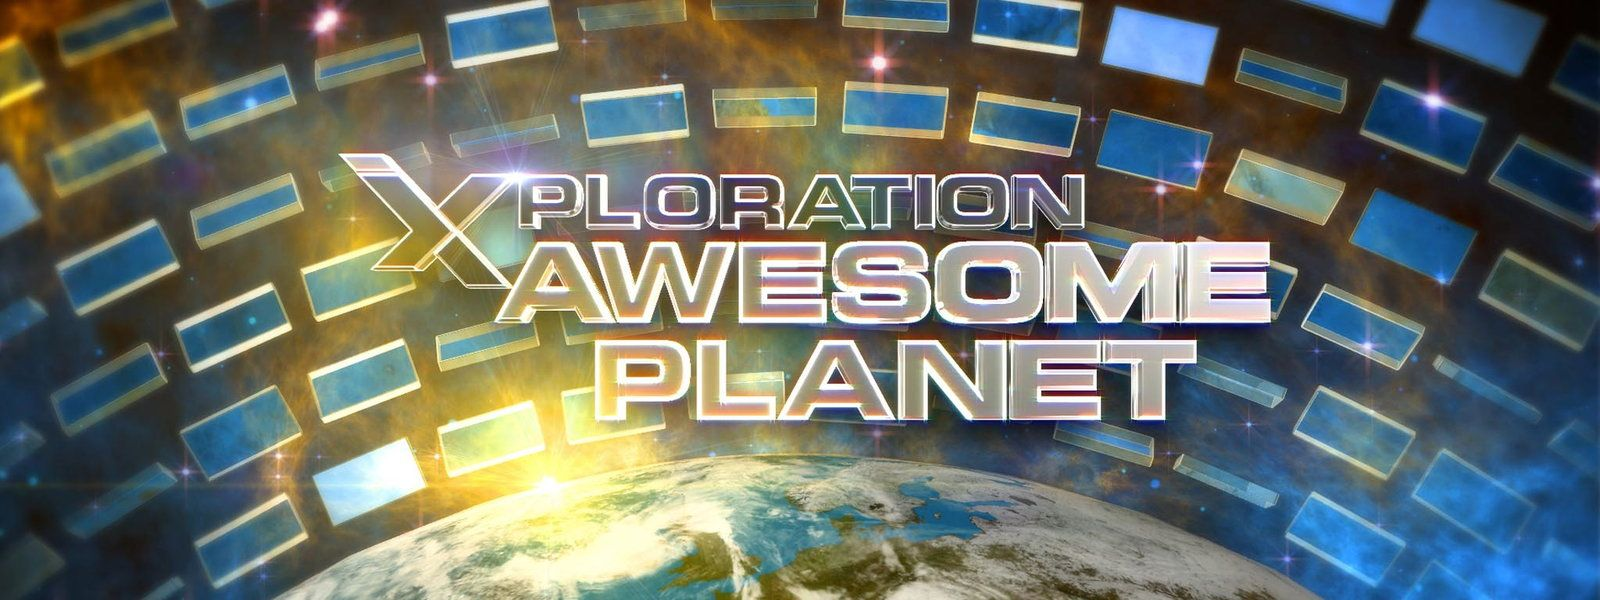 Xploration Awesome Earth science, Diy